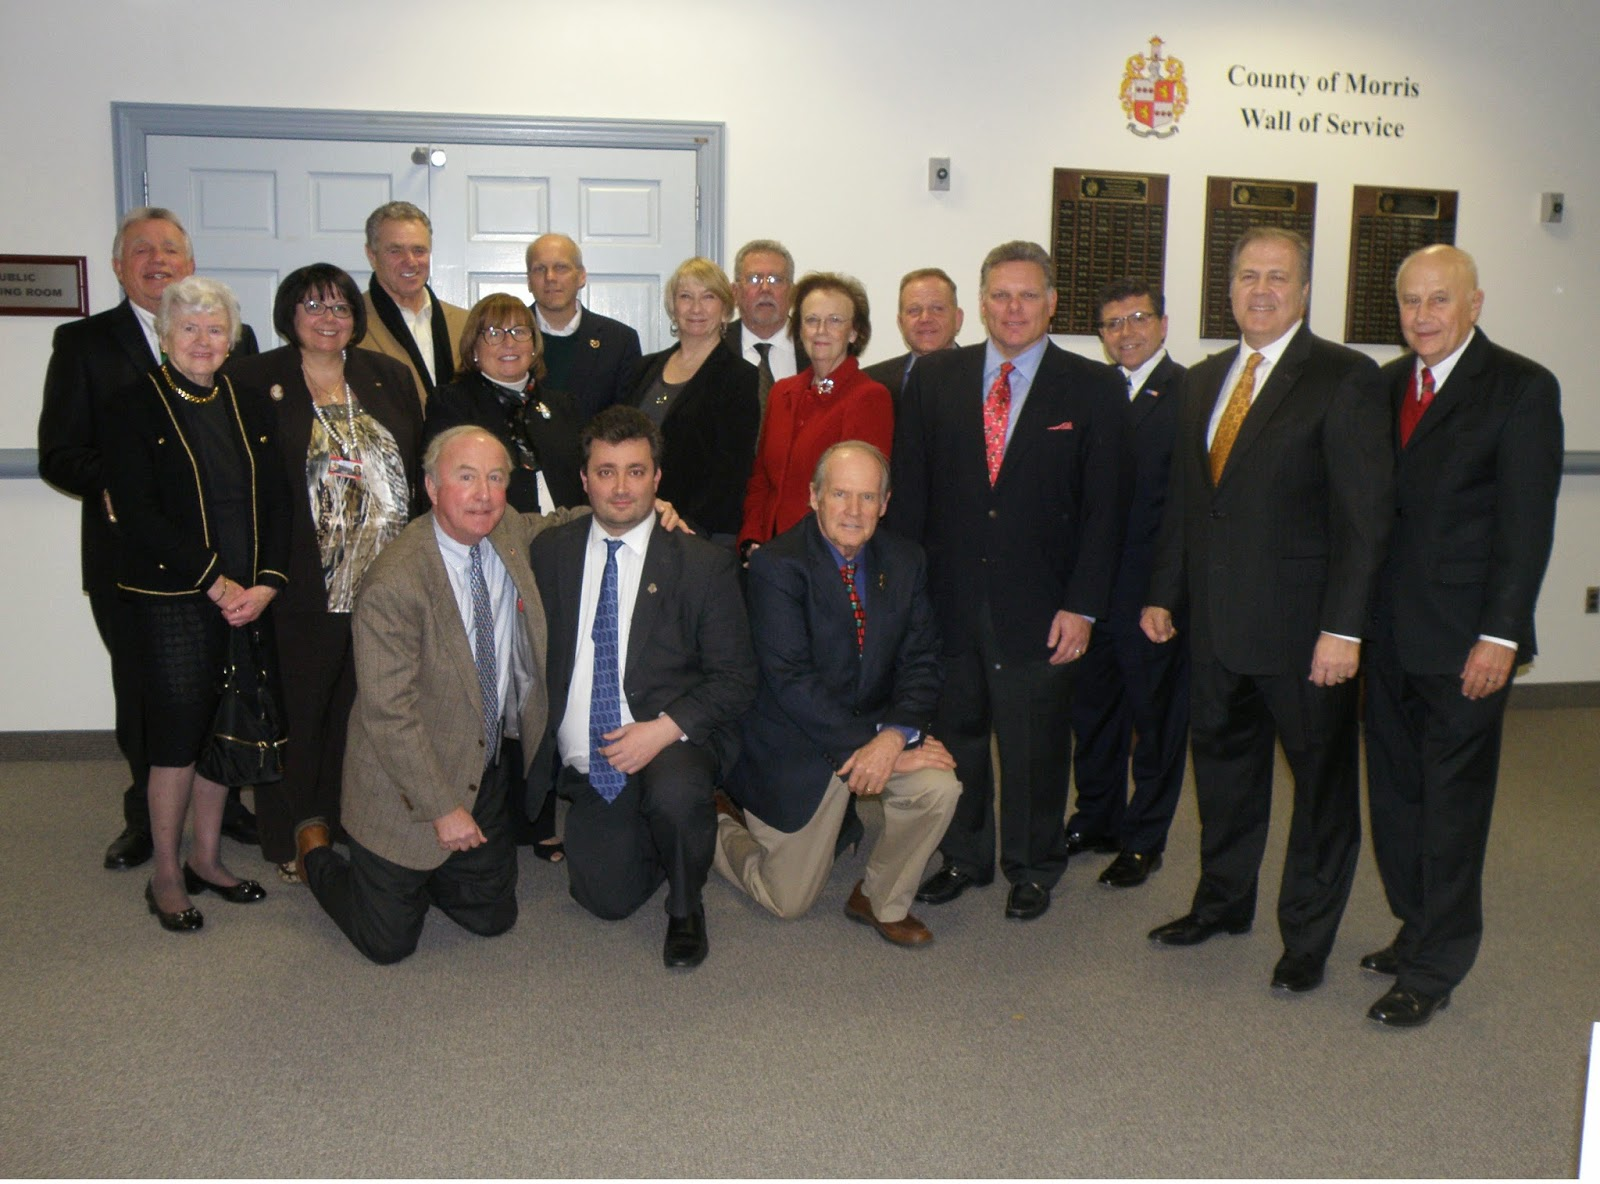 Former Freeholders Honored by Current Board With Wall of Service